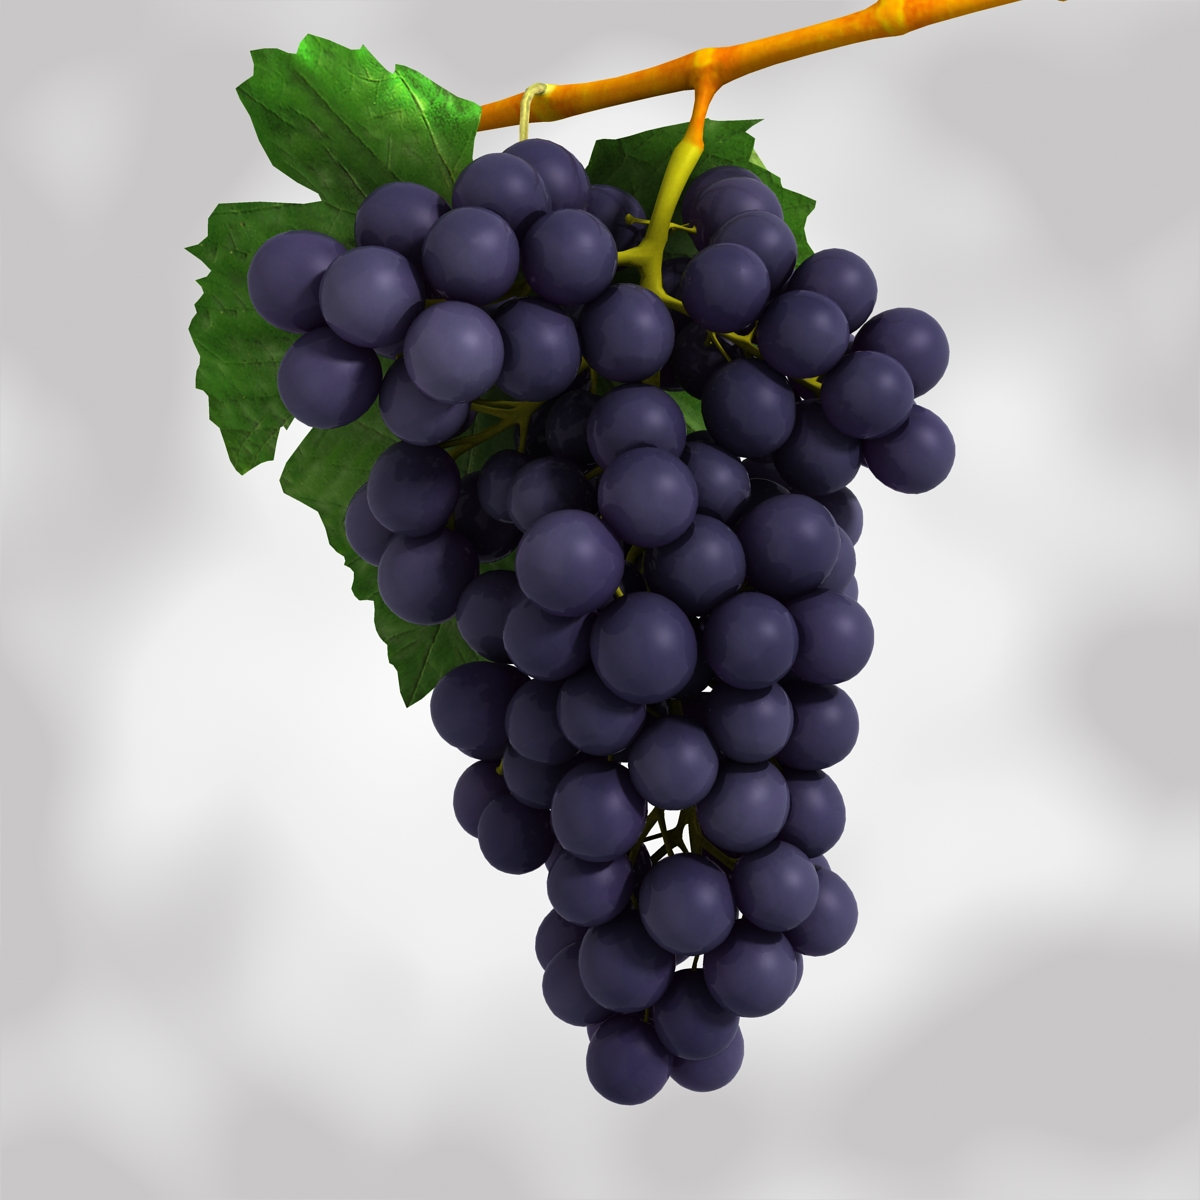 grapes black and blue 3d model 3ds max fbx c4d obj 204270